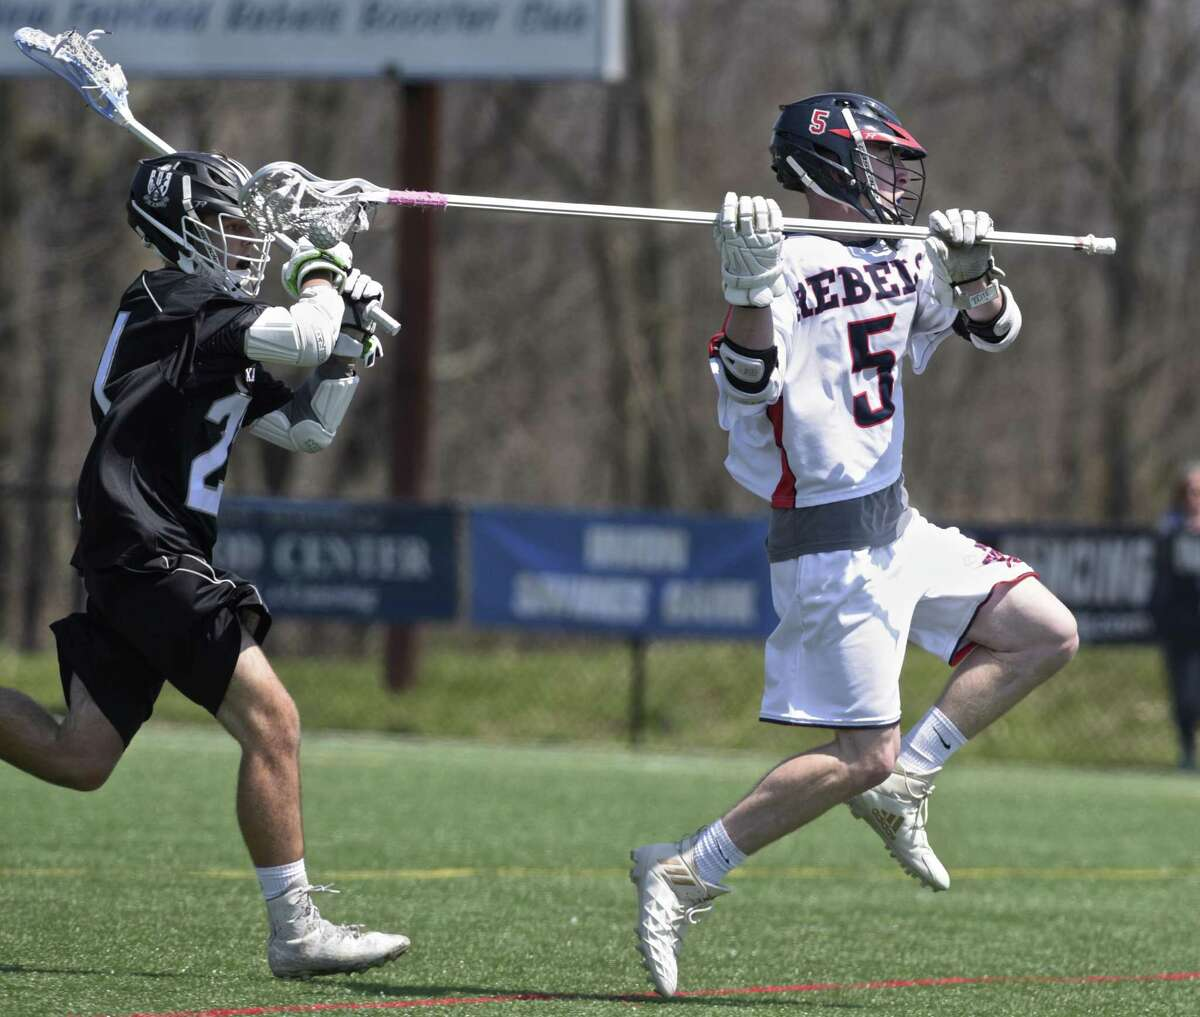 New Fairfield's William Enright gets set to take a shot in front of Xavier's Erik Fellenstein during the Rebels' 16-5 victory on Saturday in New Fairfield.